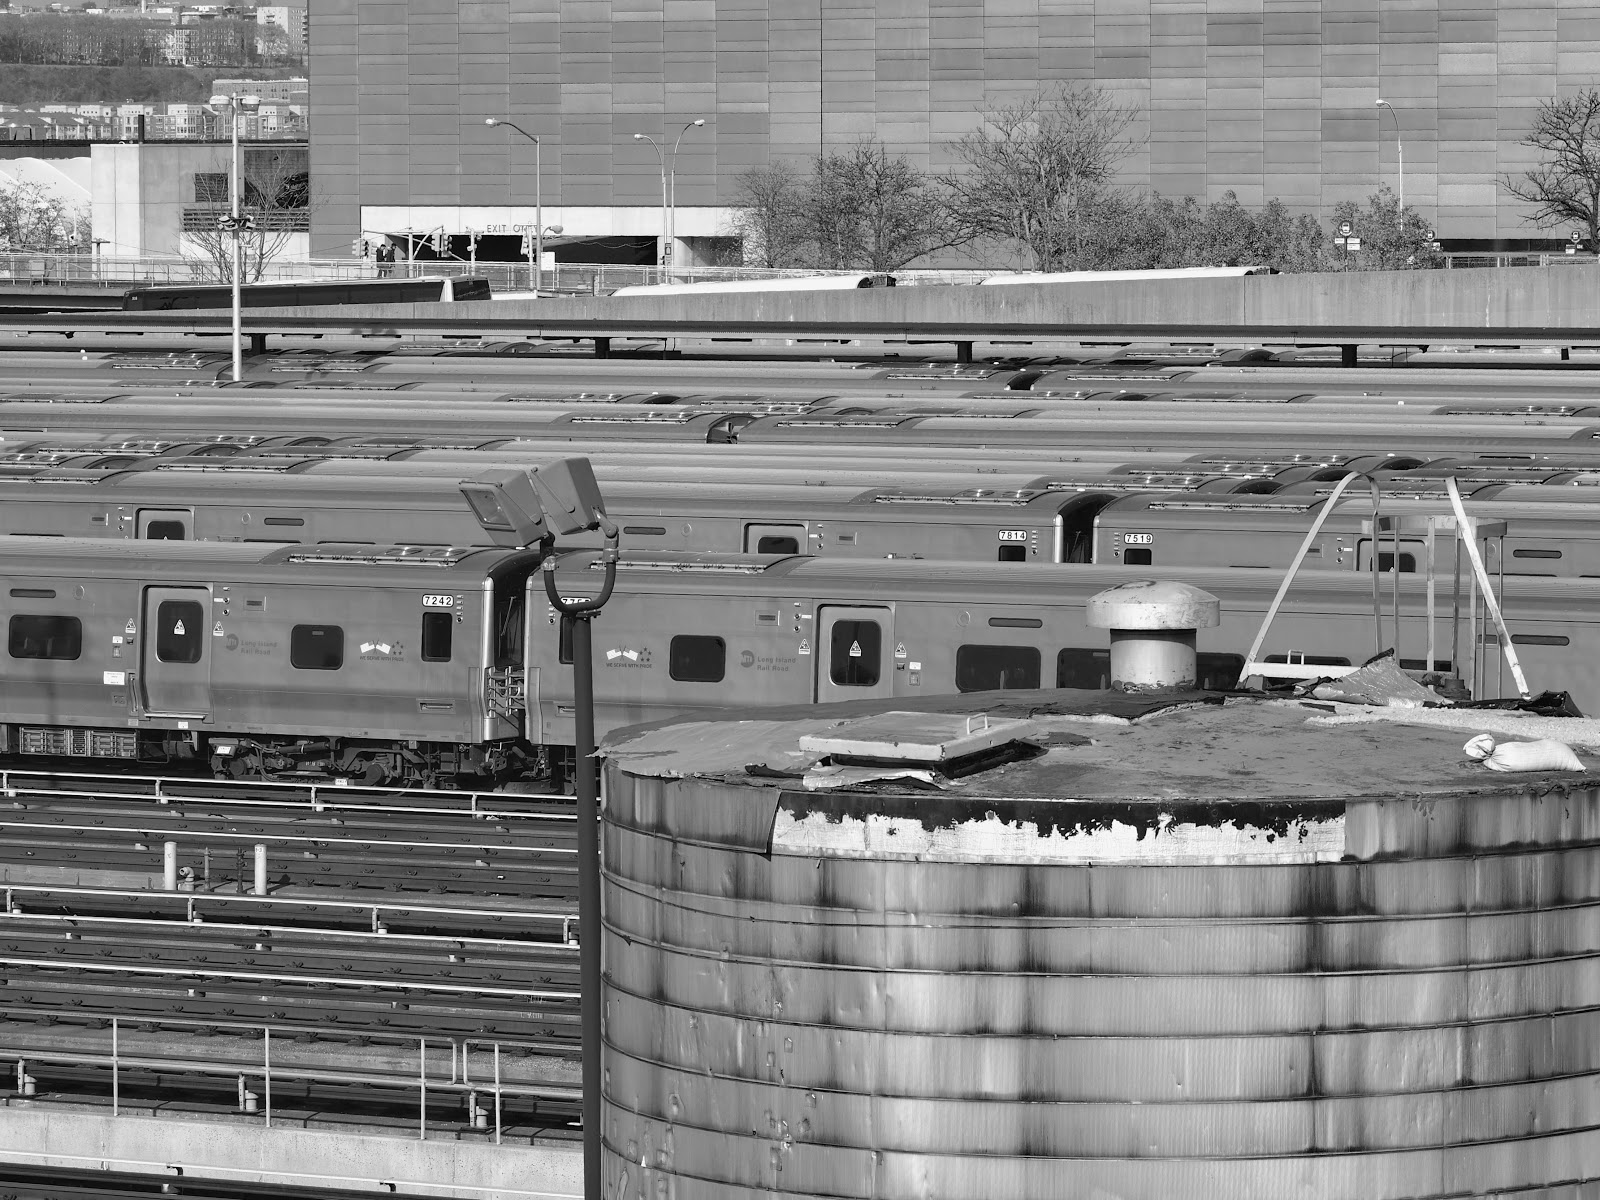 Hudson Rail Yard - Looking North #hudsonrailyardlookingnorth #railyard #hudsonyards #nyc #trains #lirr #rail #trains